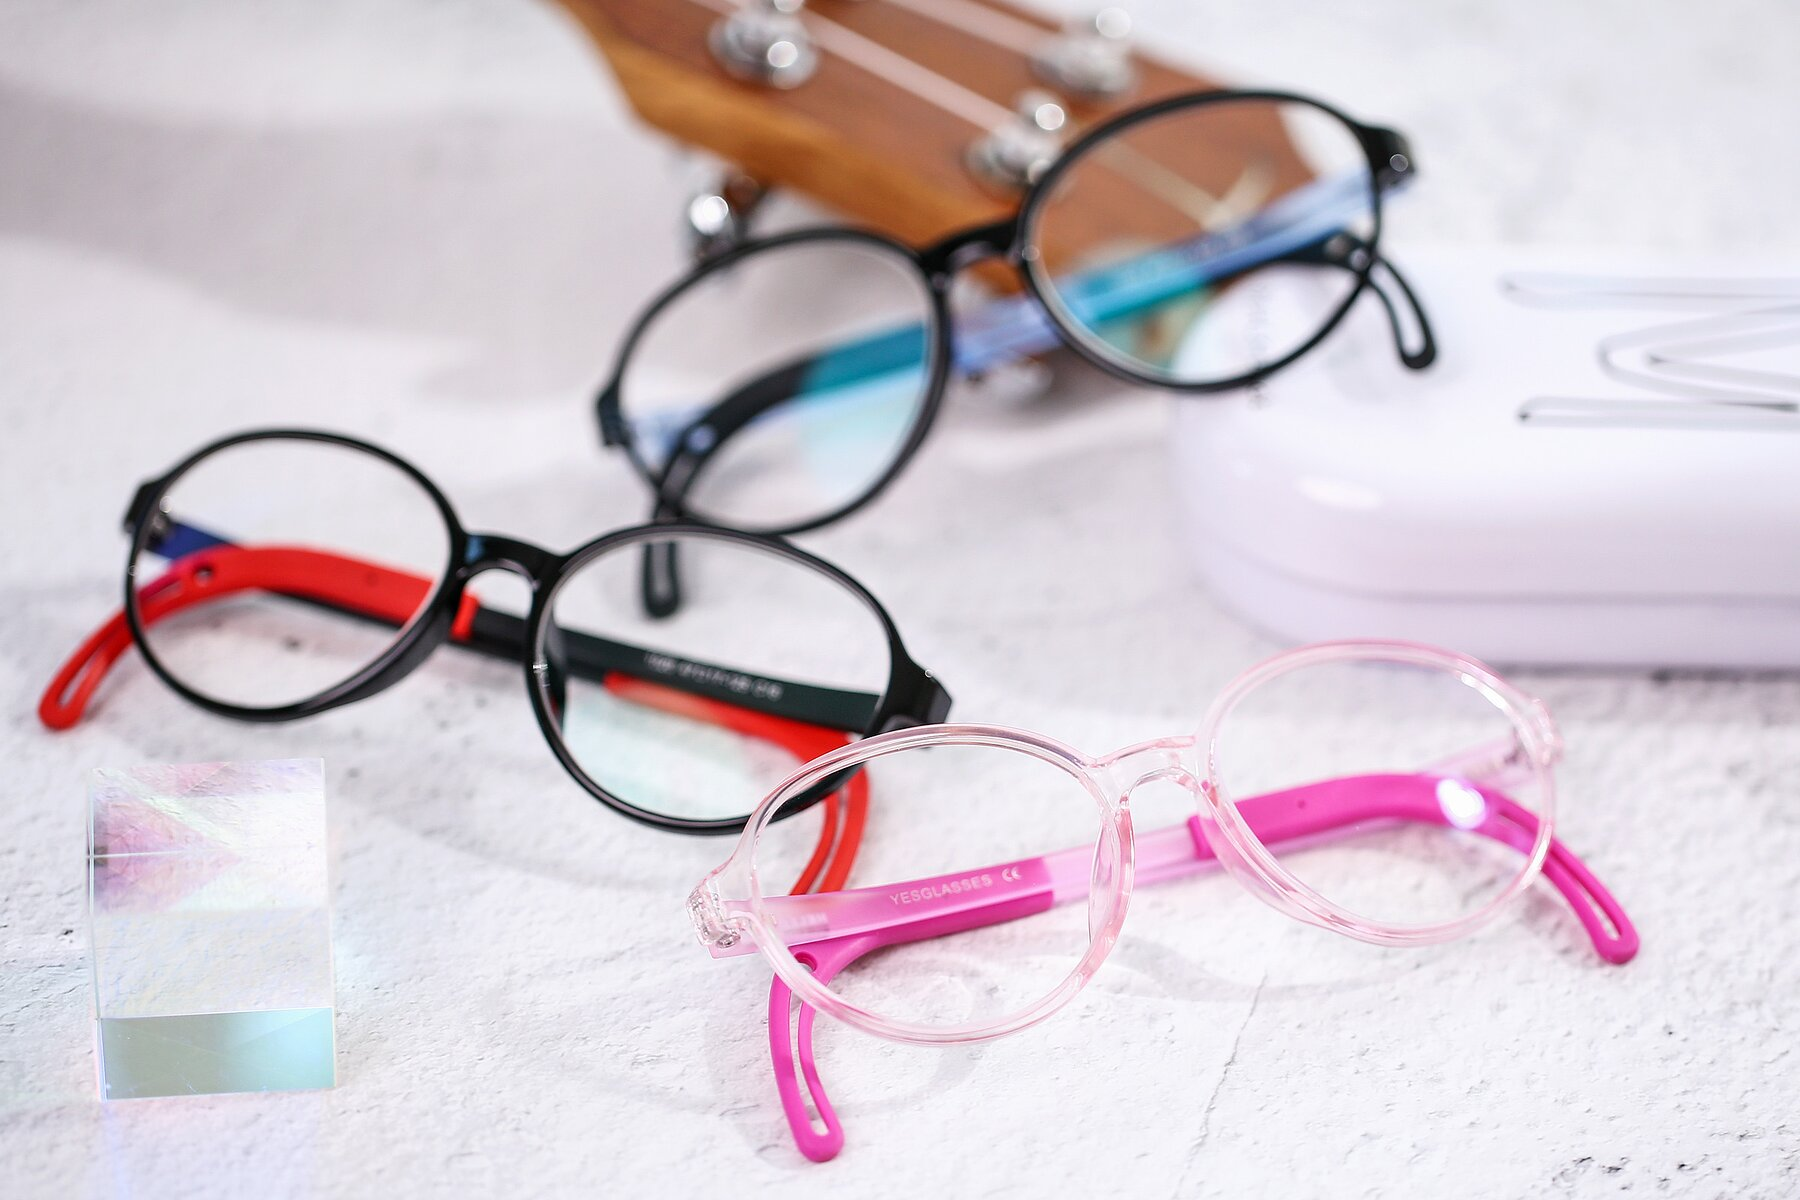 Women's lifestyle photography #4 of 1020 in Tranparent Pink with Clear Eyeglass Lenses